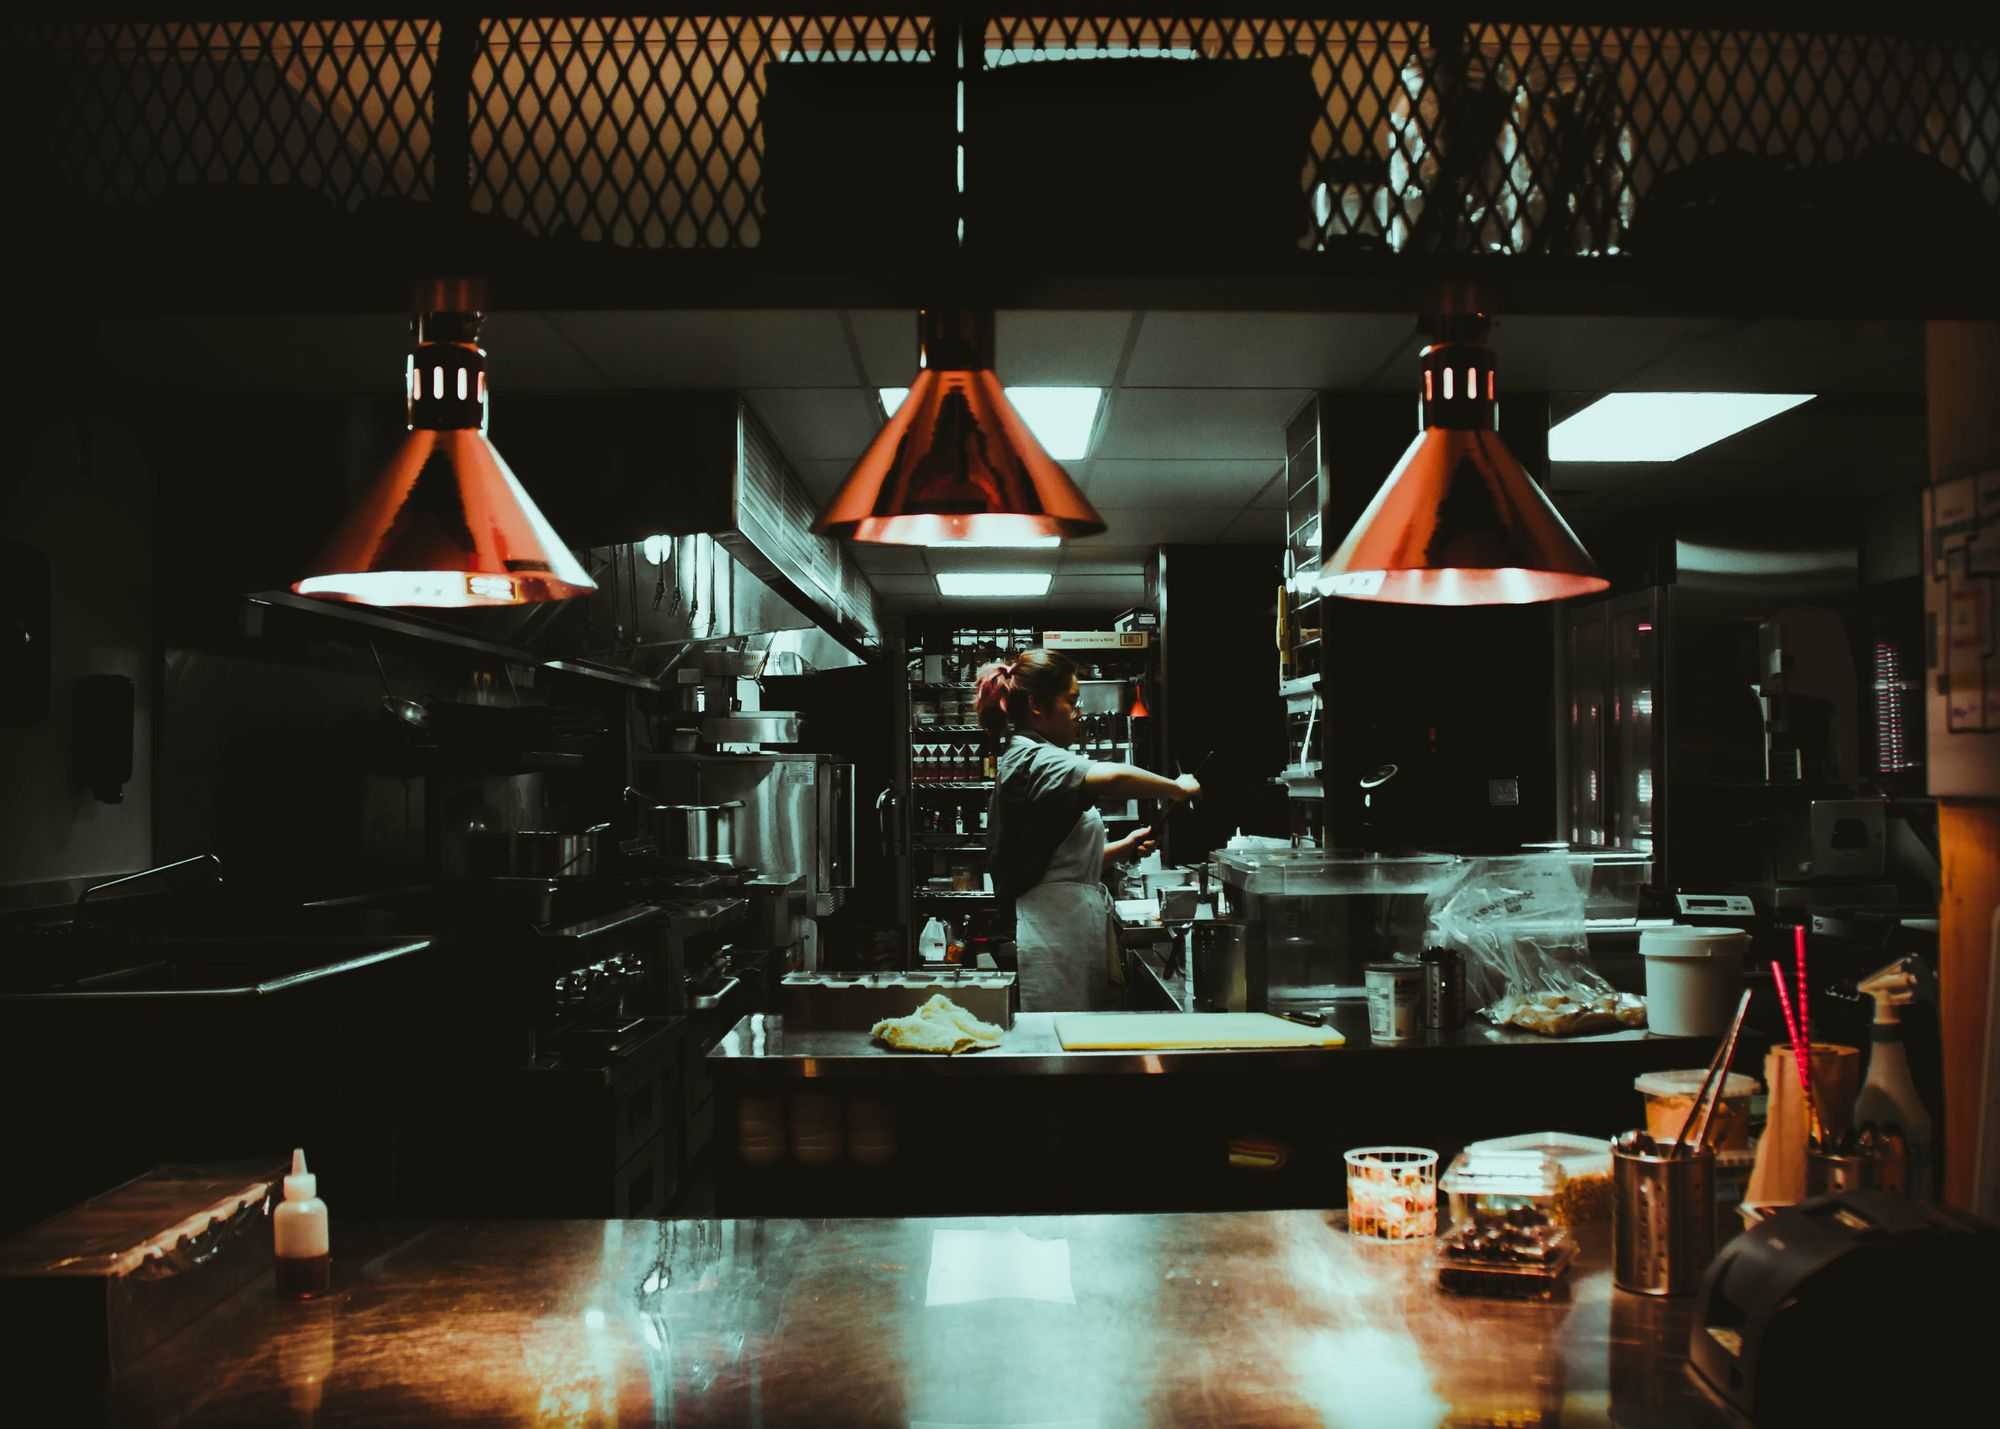 What's the True Cost of Employee Turnover to the Restaurant Industry?